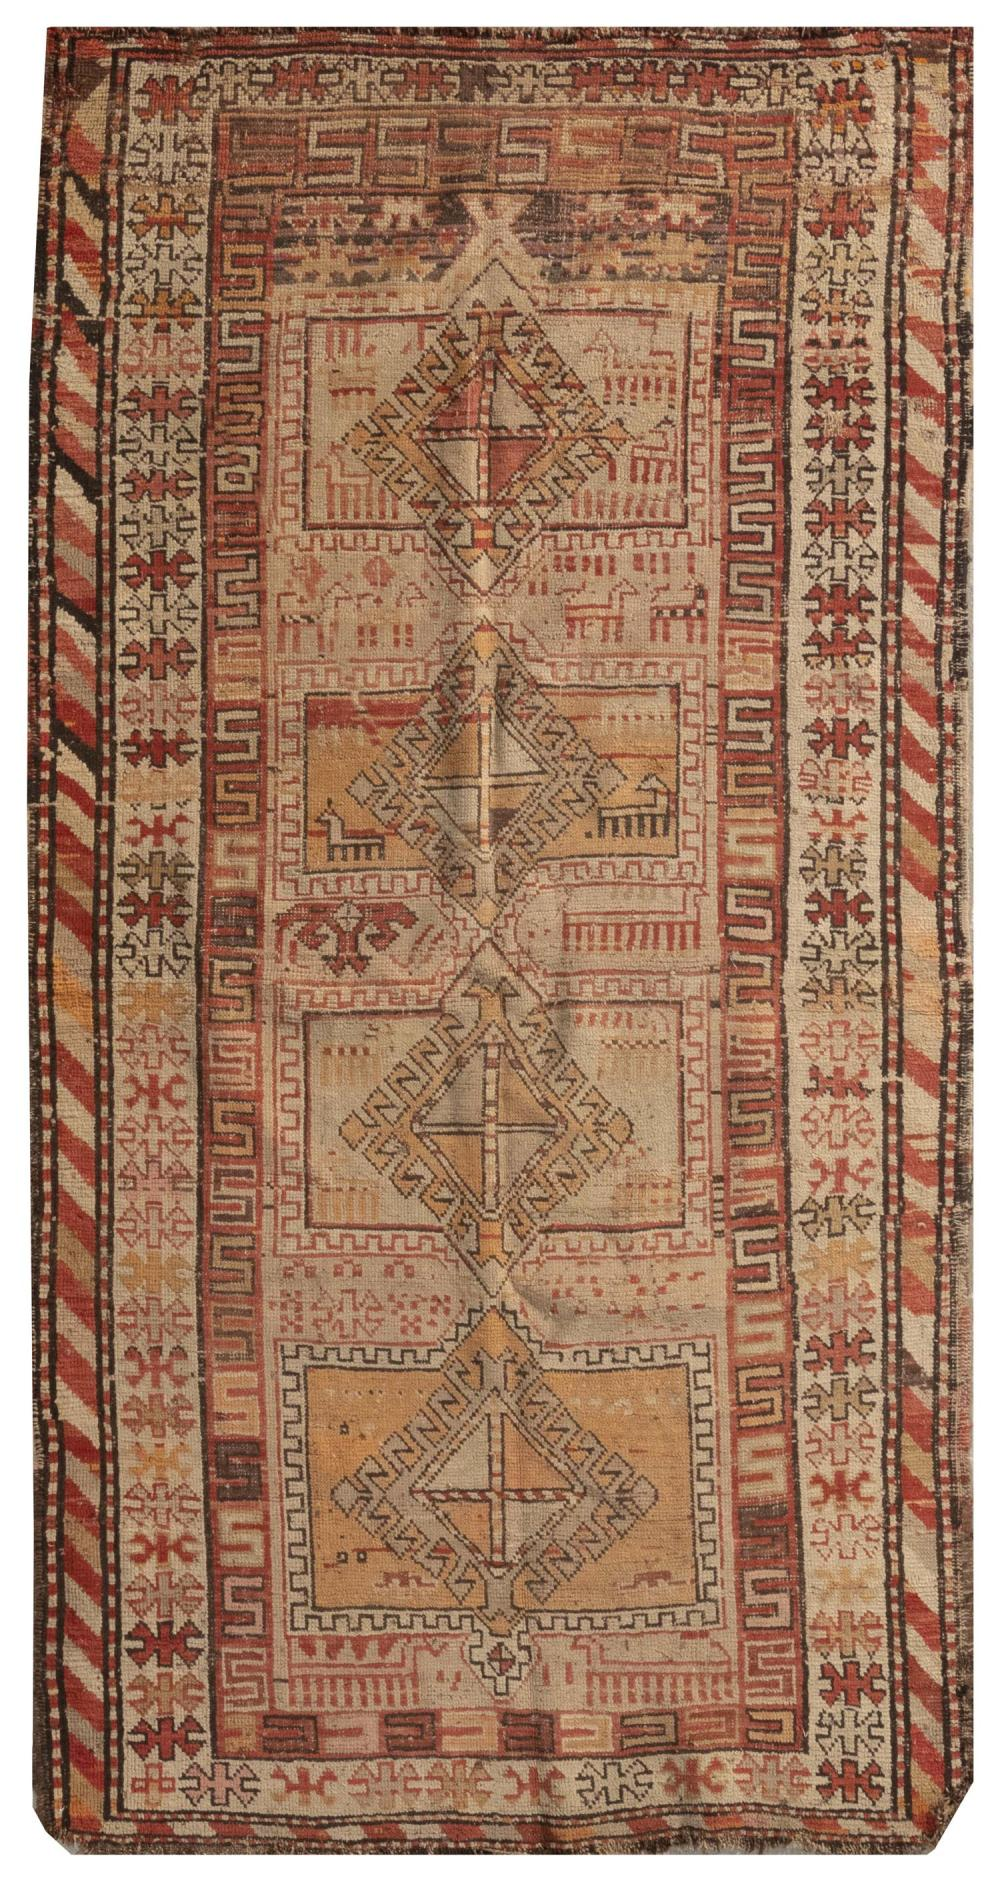 "ORIENTAL RUG: TURKISH 3'6"" x 6'9"" Four geometric medallions in faded shades of red, orange and ivory share an ivory field with numer."